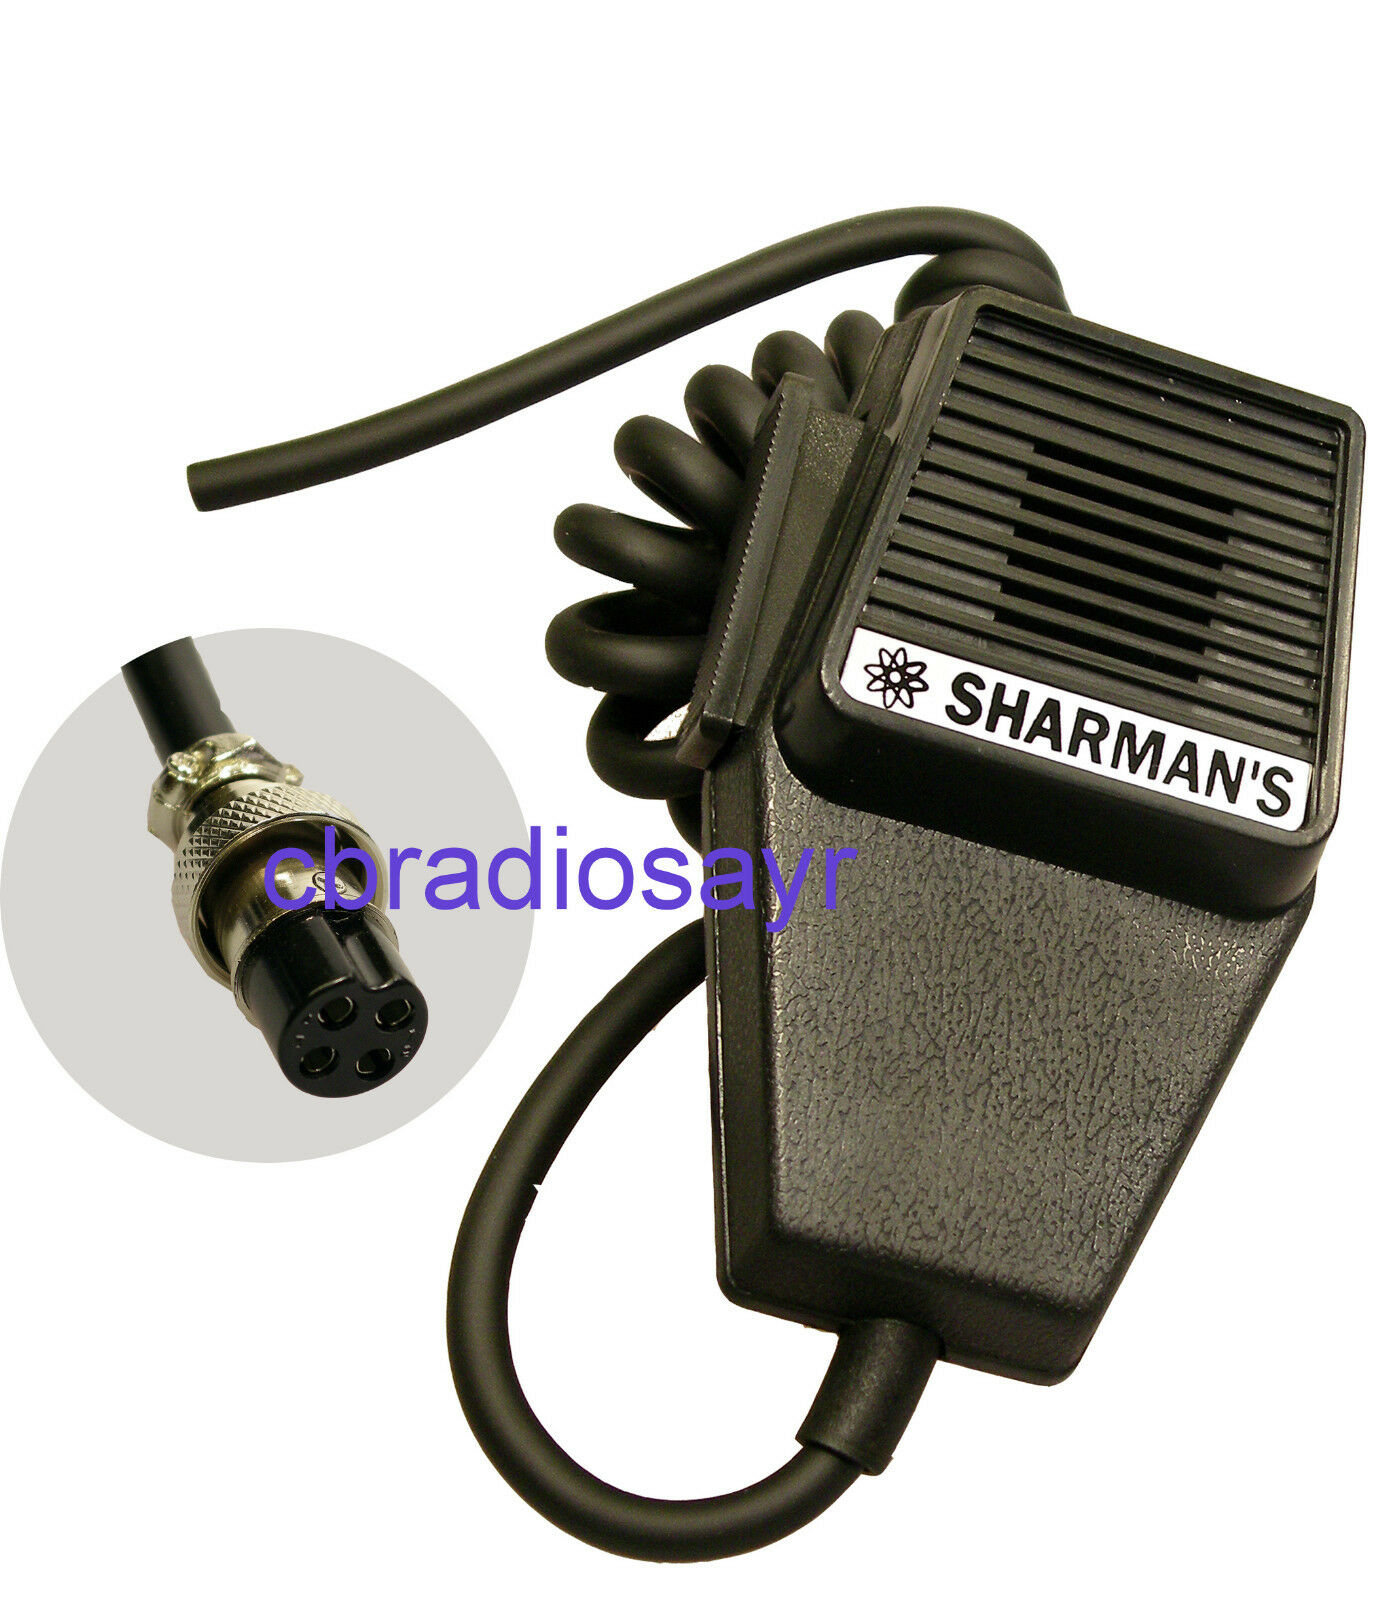 President Jackson Cb Mic Wiring 4 Pin Wire Center Uniden Bearcat 880 Free Download Diagram Schematic Replacement Microphone Cobra Tti 550 Maxon Rh Picclick Co Uk Codes